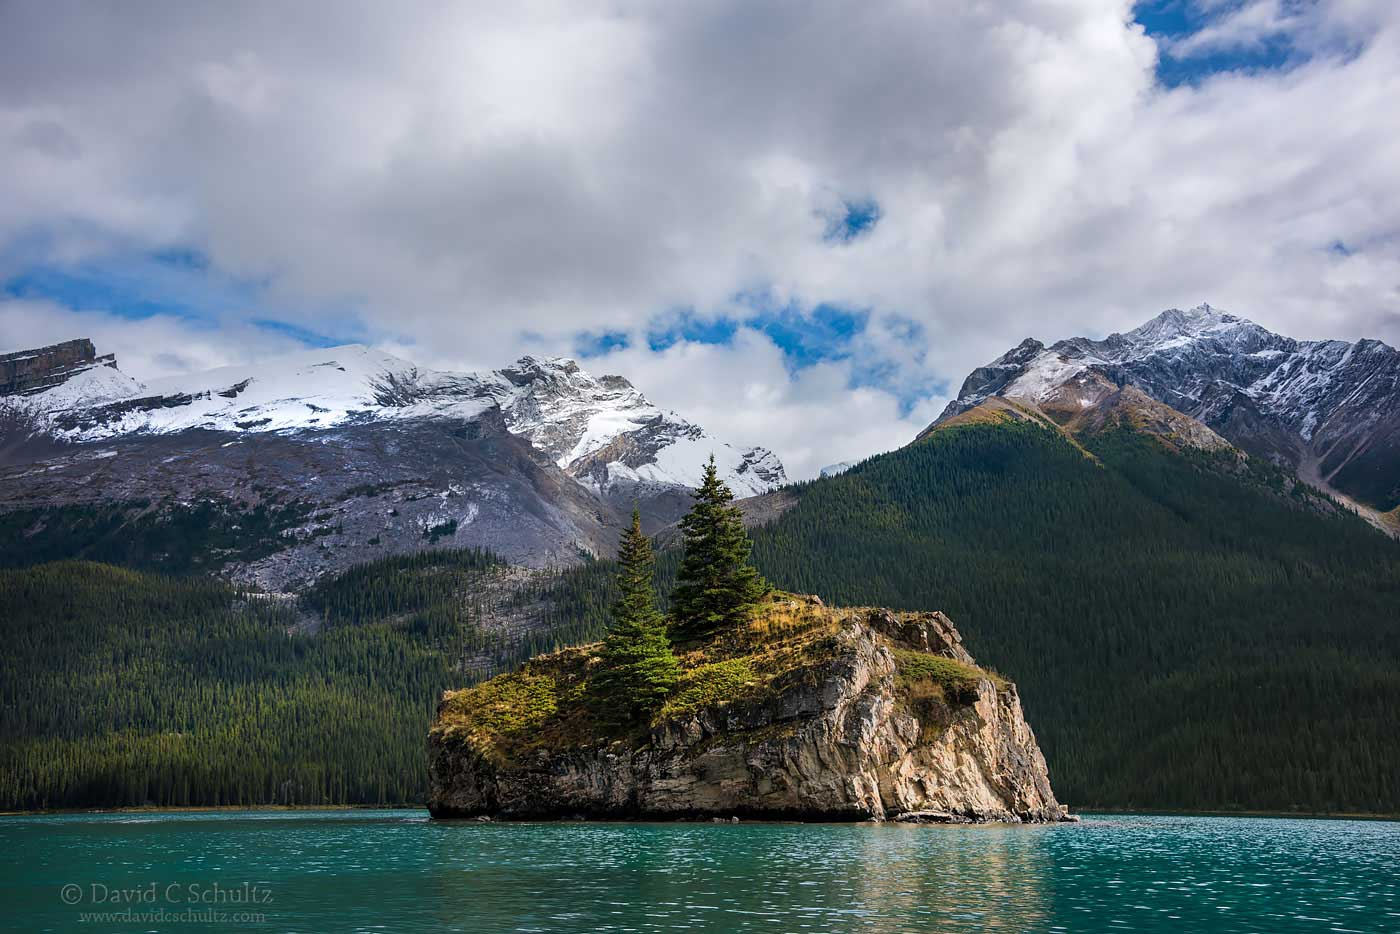 Maligne Lake, Jasper National Park, Canada - Image #125-553